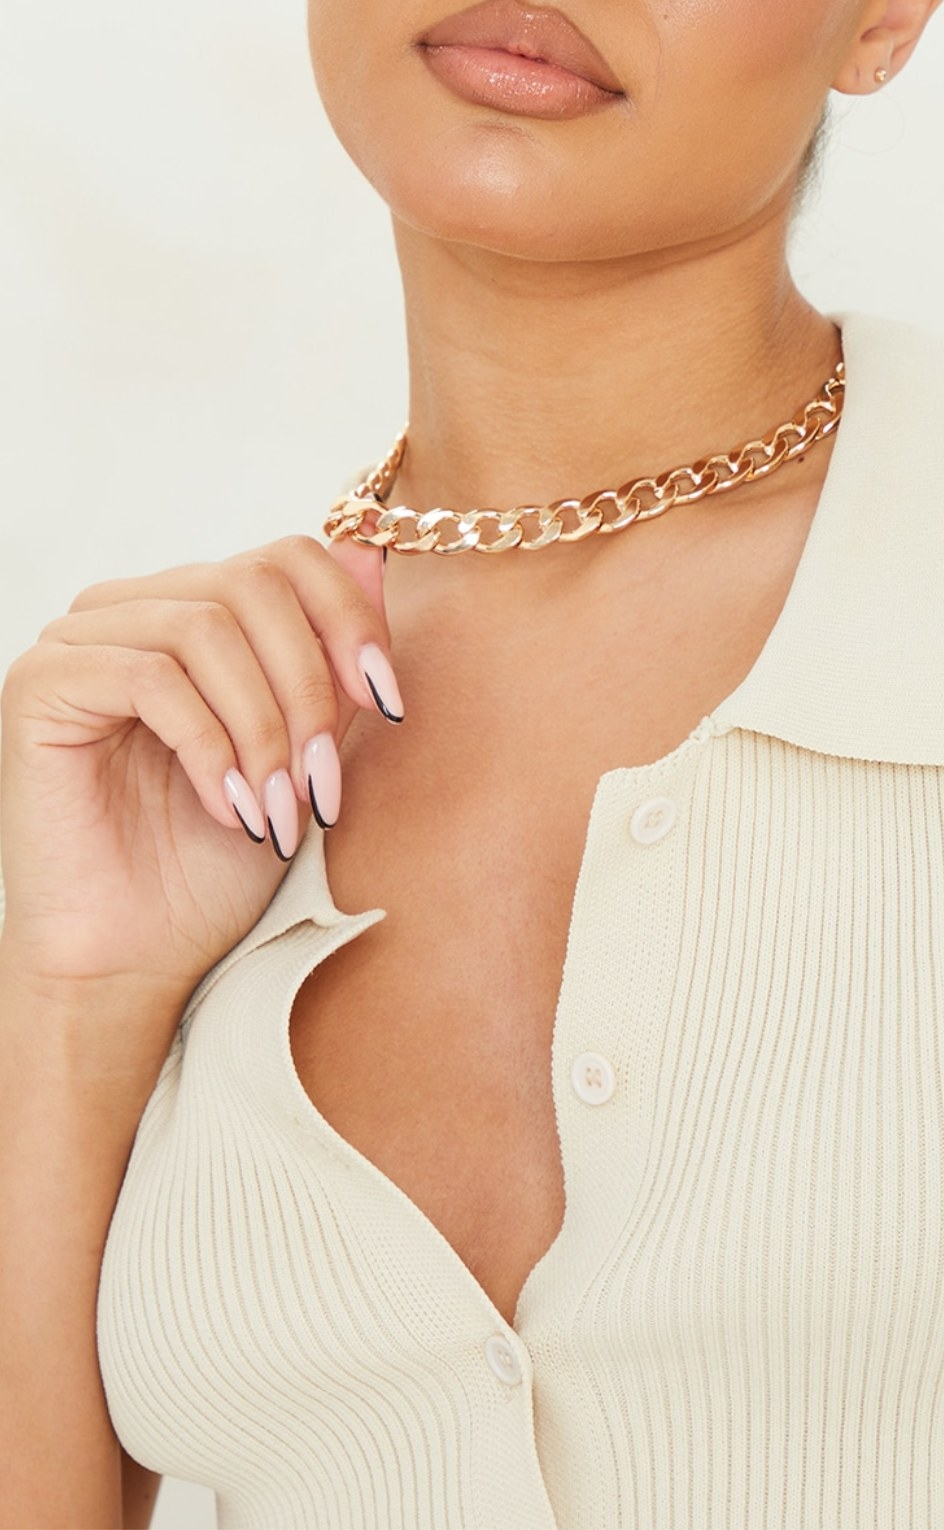 model wearing the necklace and holding it out from neck with one hand